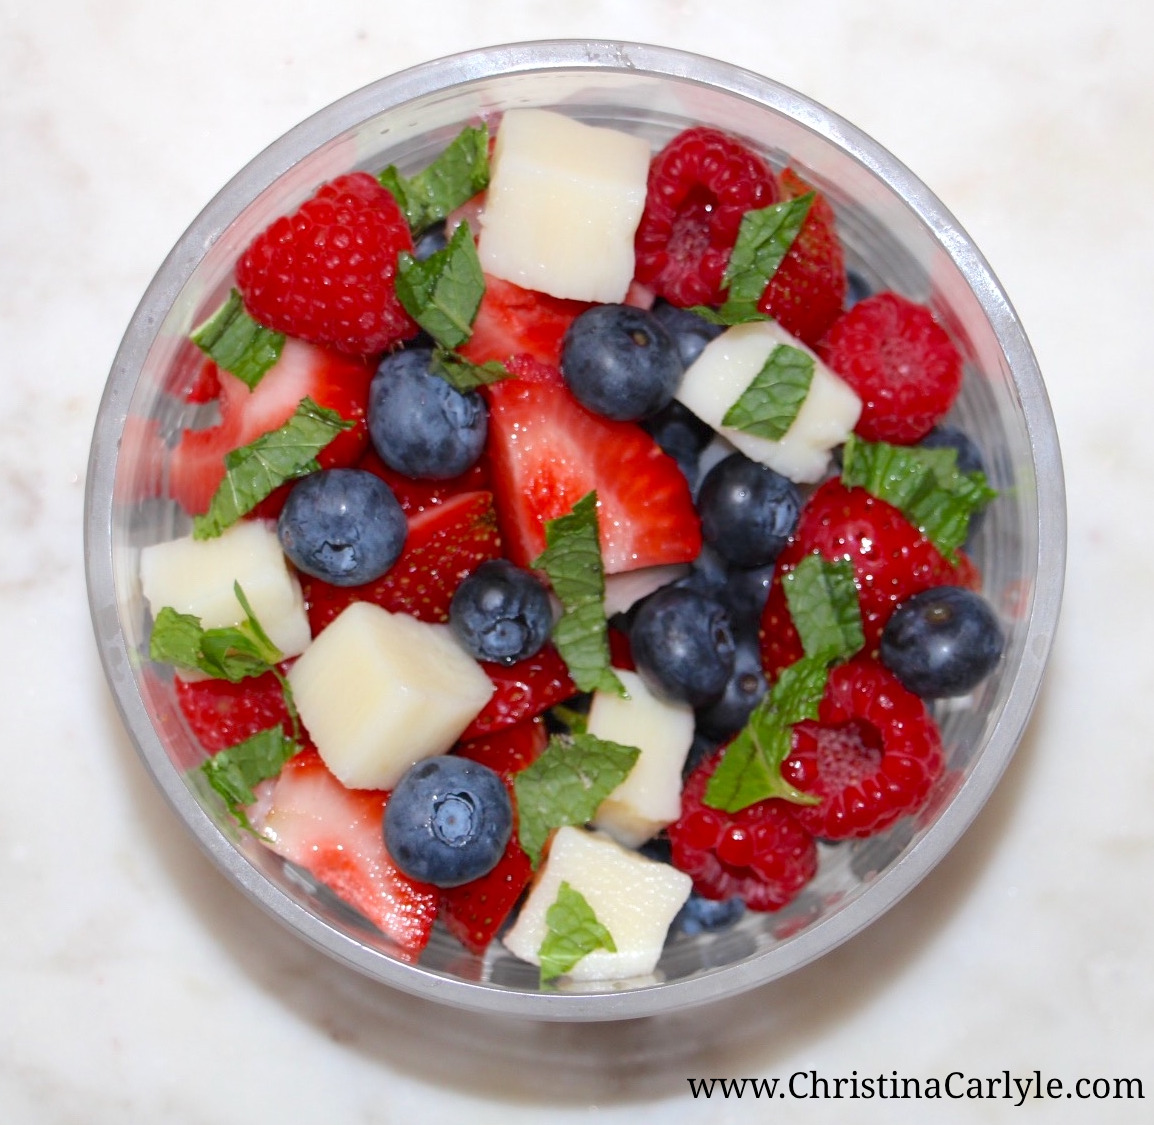 Healthy 4th of July Recipes - Red, White and Blue Berries and Hearts of Palm Salad from nutritionist Christina Carlyle. Nutritious, Delicious, and Easy Healthy 4th of July Recipes you can enjoy guilt-free.  These delicious, Healthy 4th of July Recipes are high in nutrients and fiber but low in calories, fat, and sugar.  https://www.christinacarlyle.com/healthy-4th-of-july-recipes